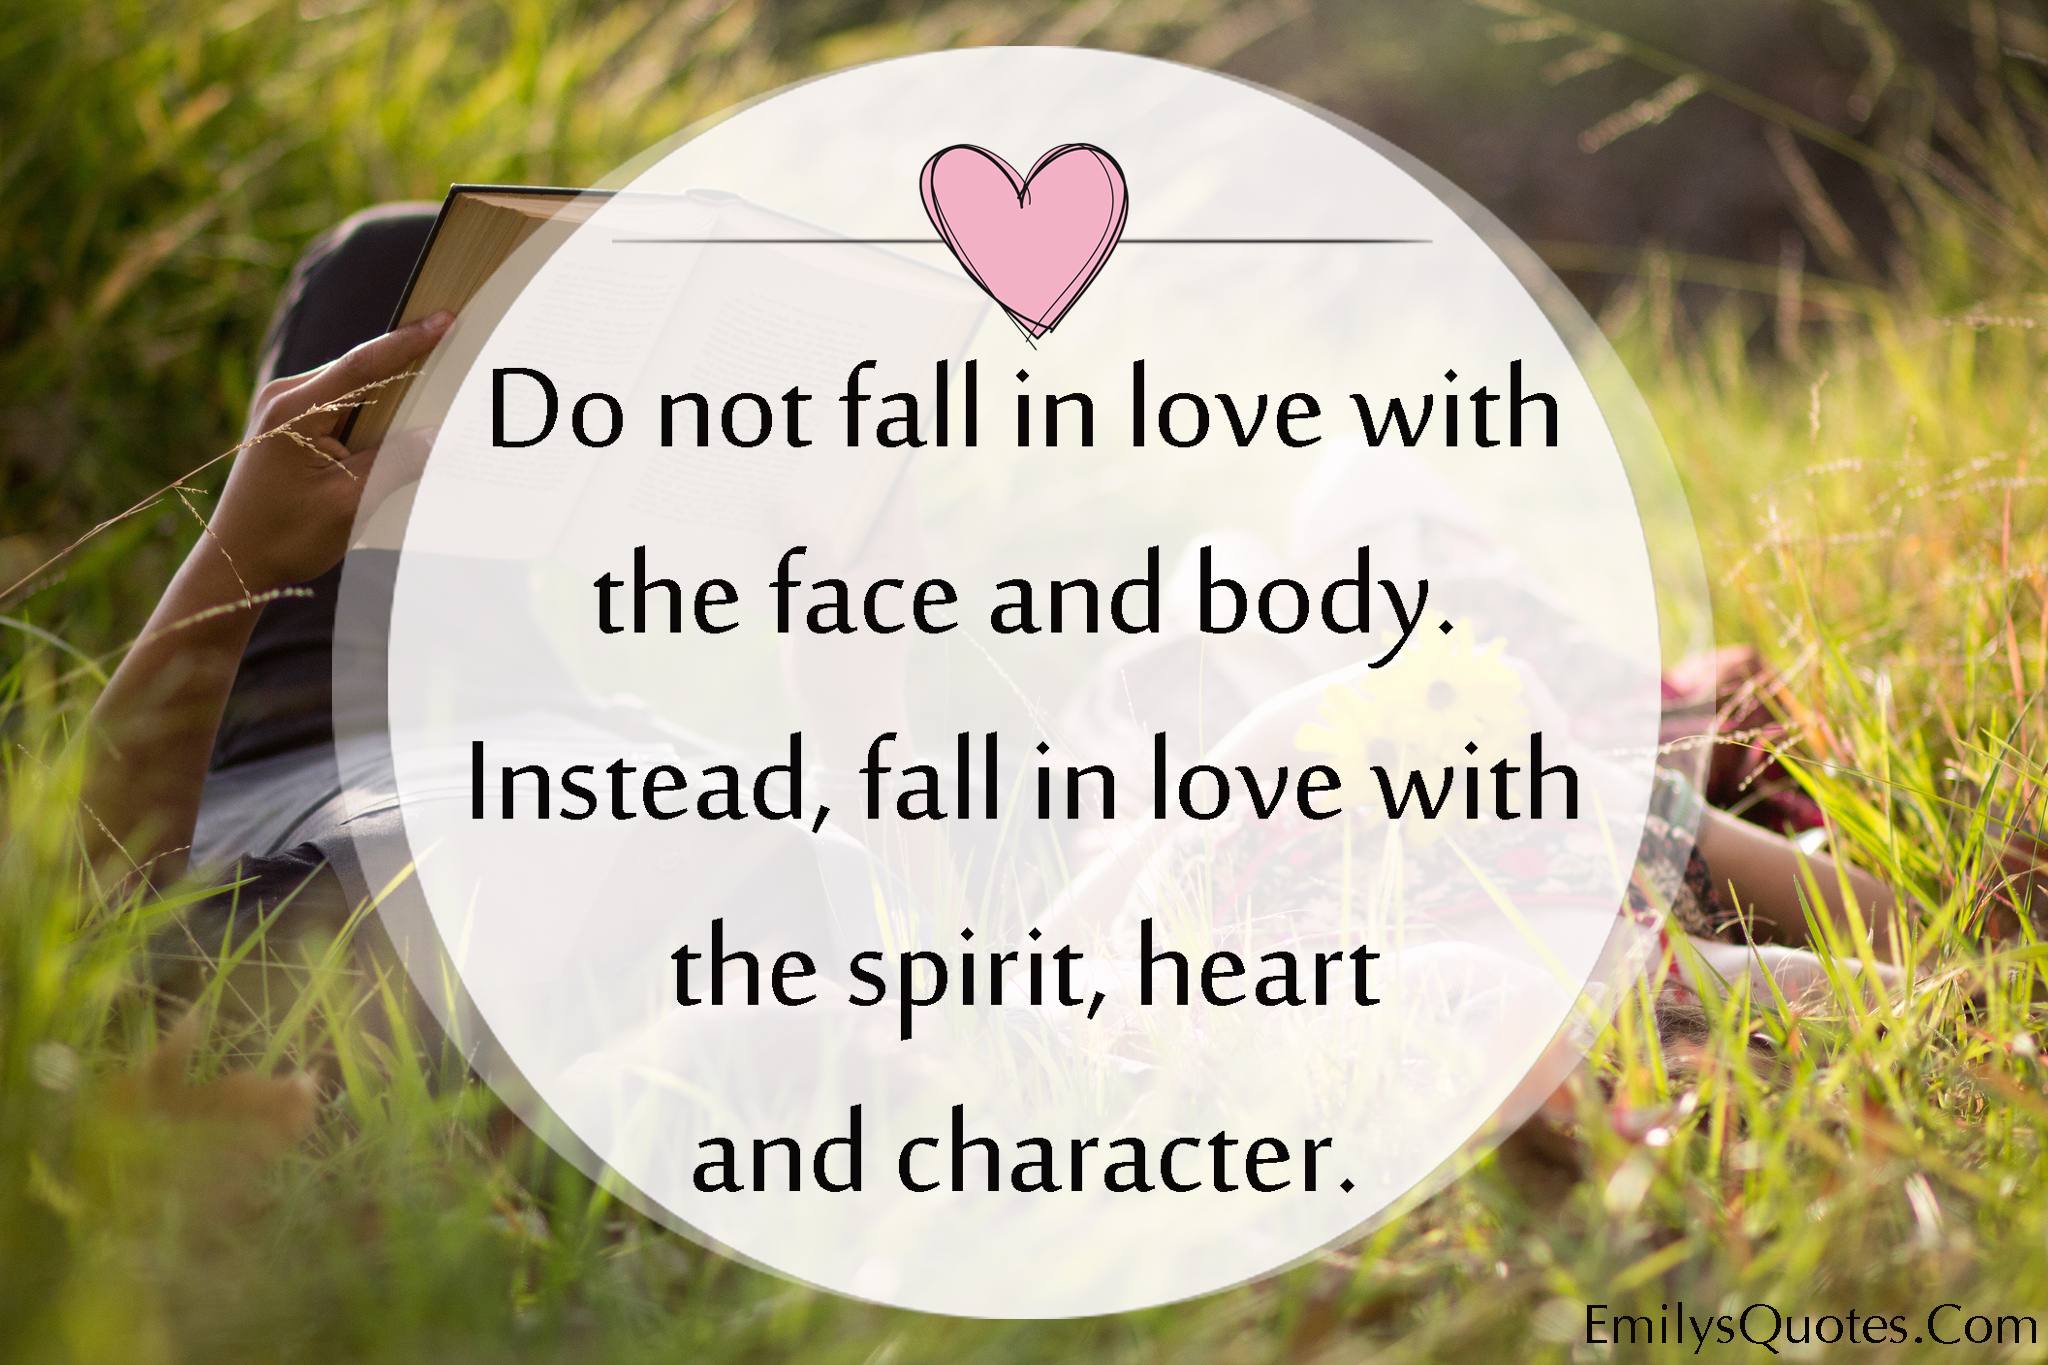 Spiritual Quotes About Love Do Not Fall In Love With The Face And Bodyinstead Fall In Love